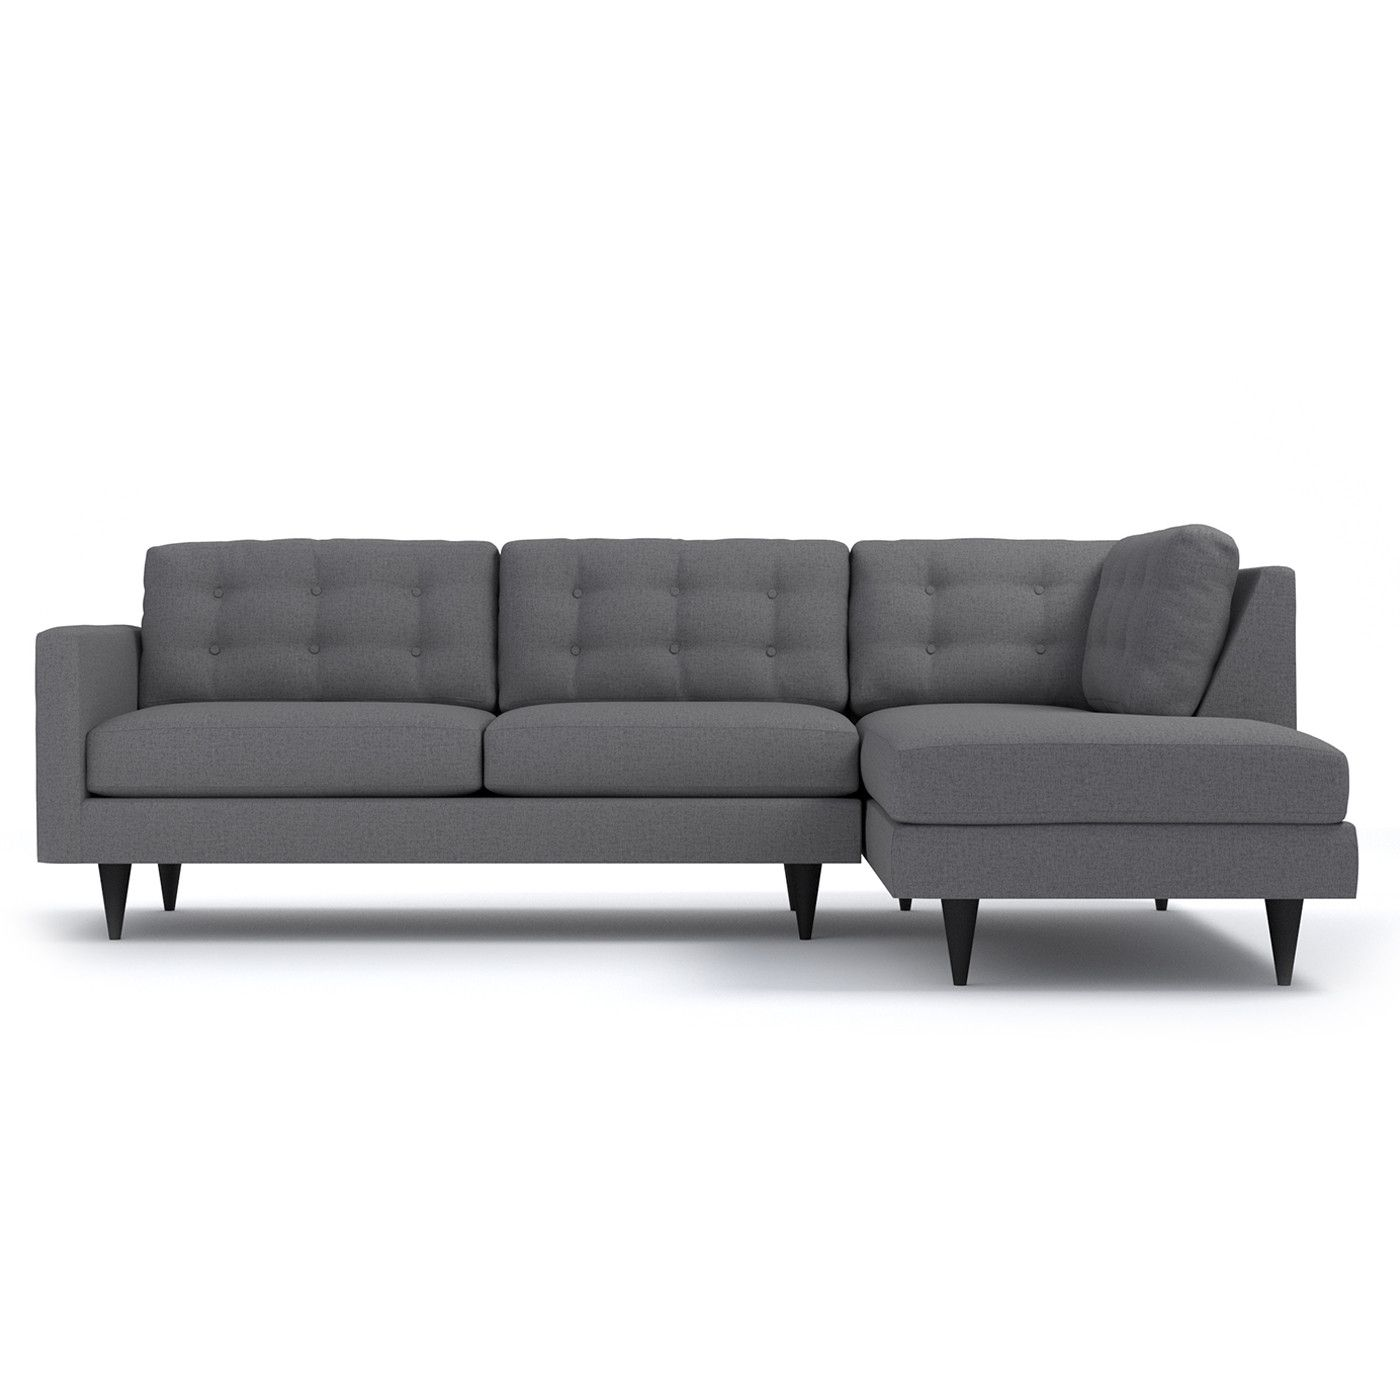 Tufted Sectional Sofa Layout